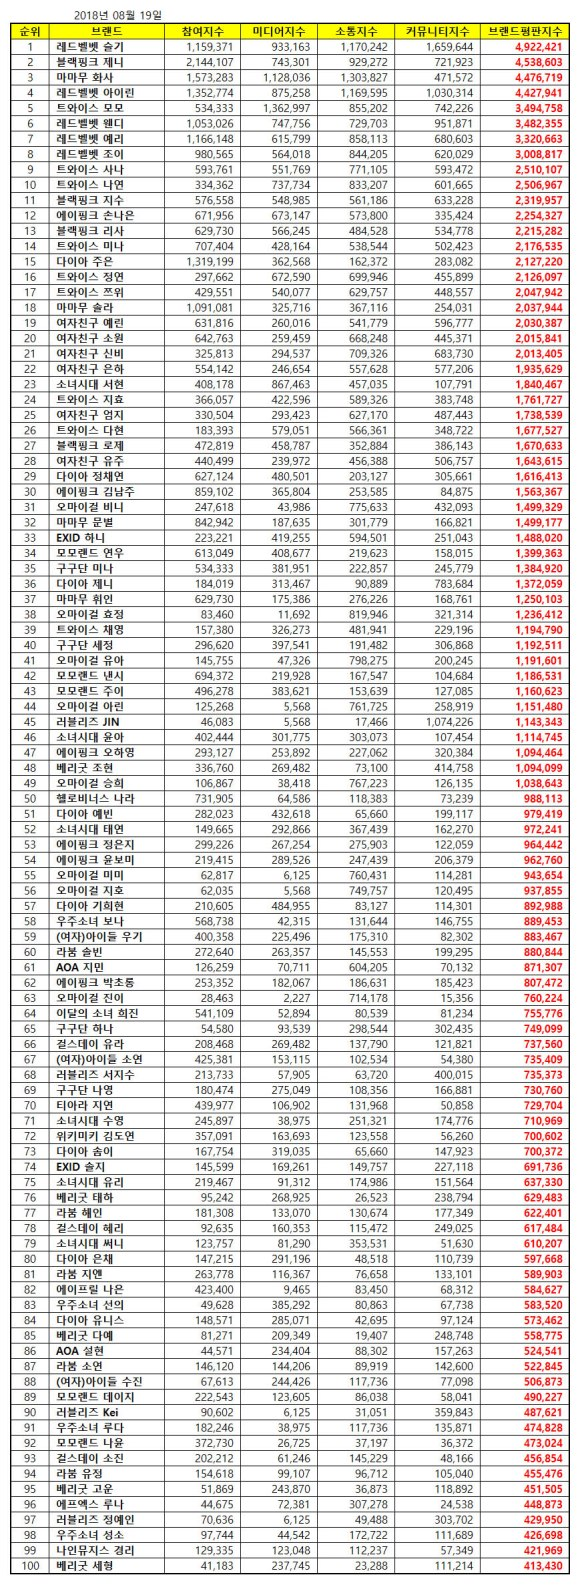 180819 aug 2018 brand index reputation gg member list